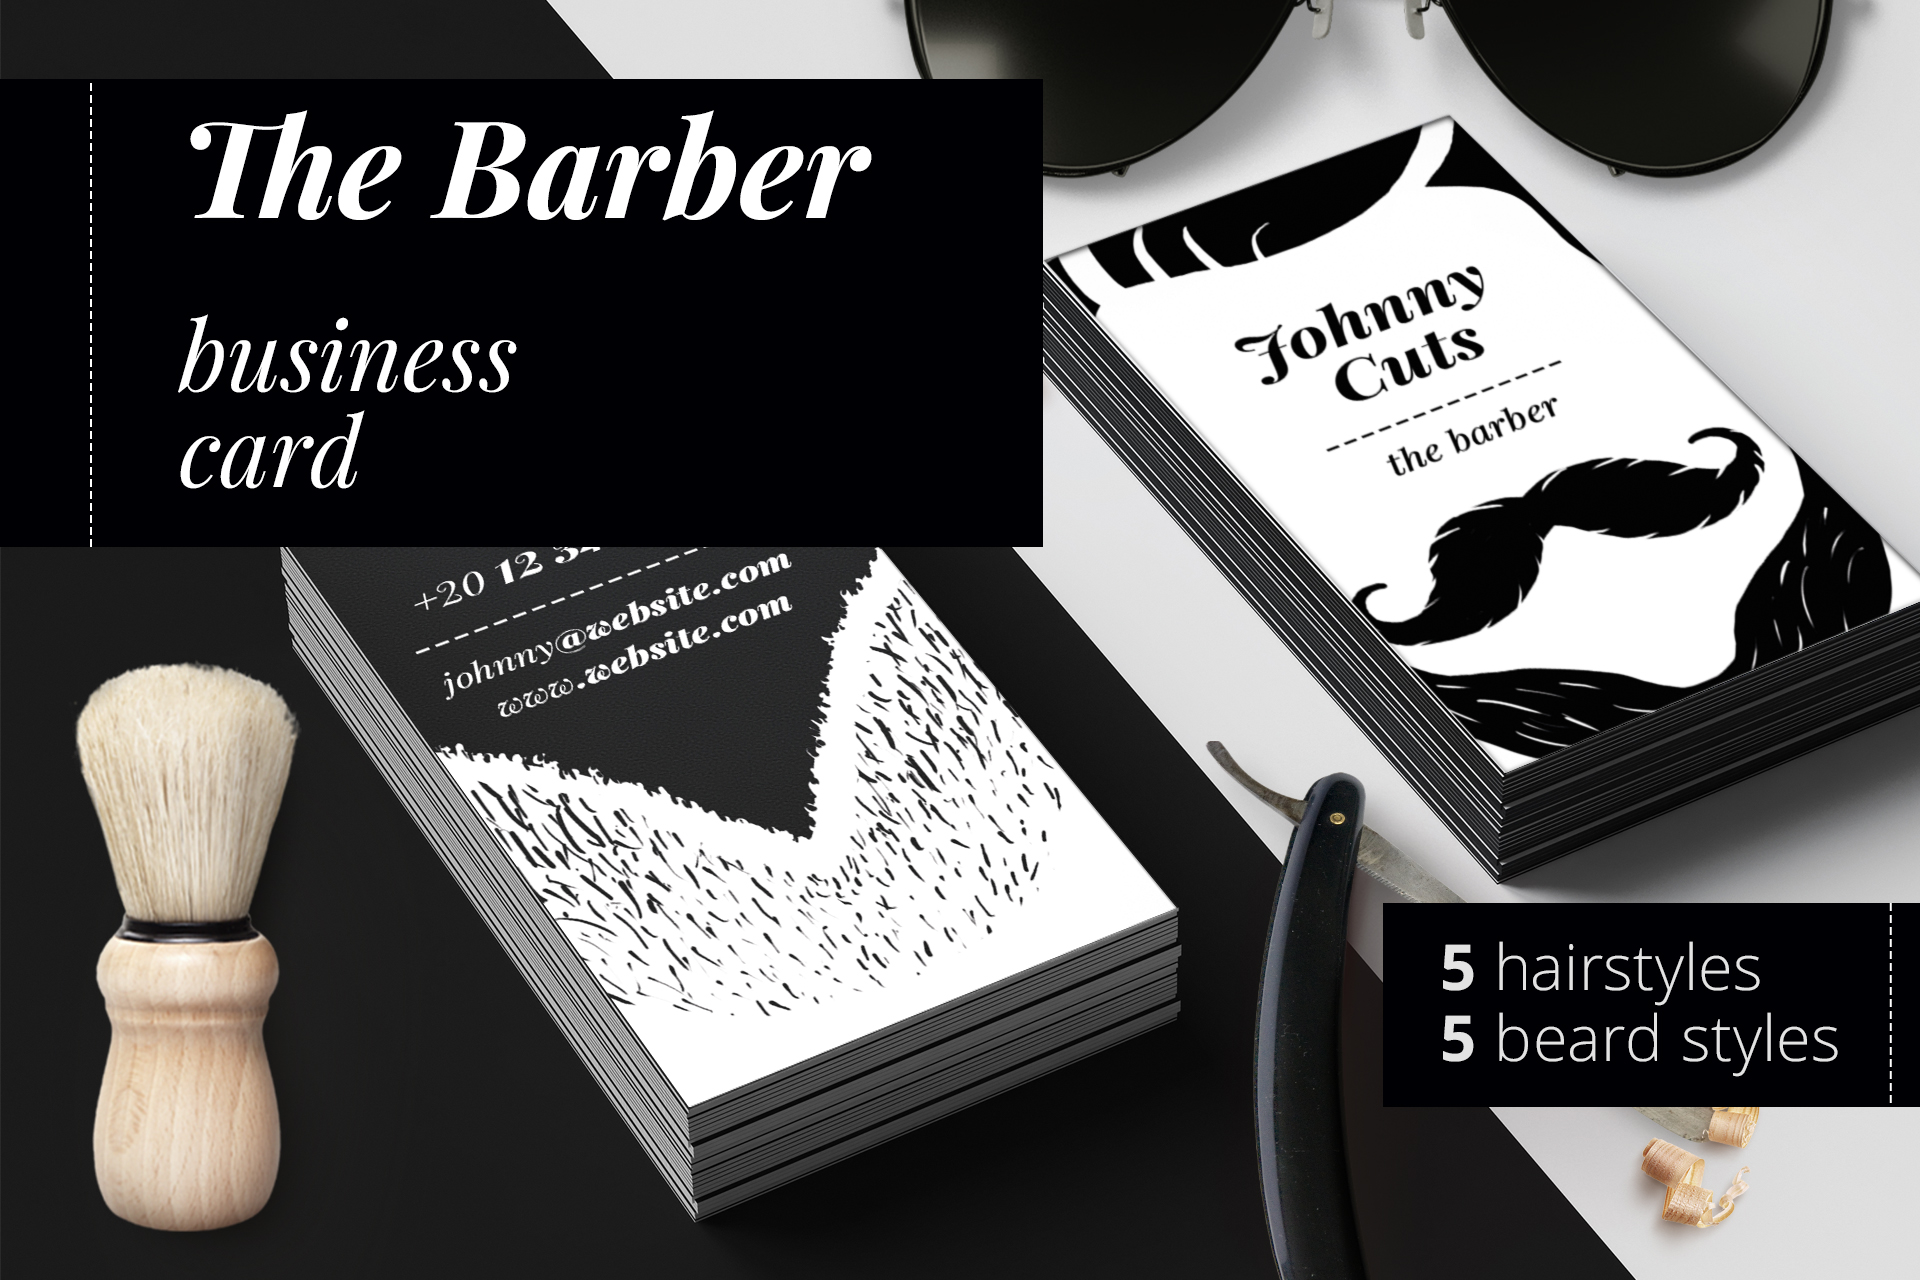 The barber business cards templates by design bundles the barber business cards templates example image 1 colourmoves